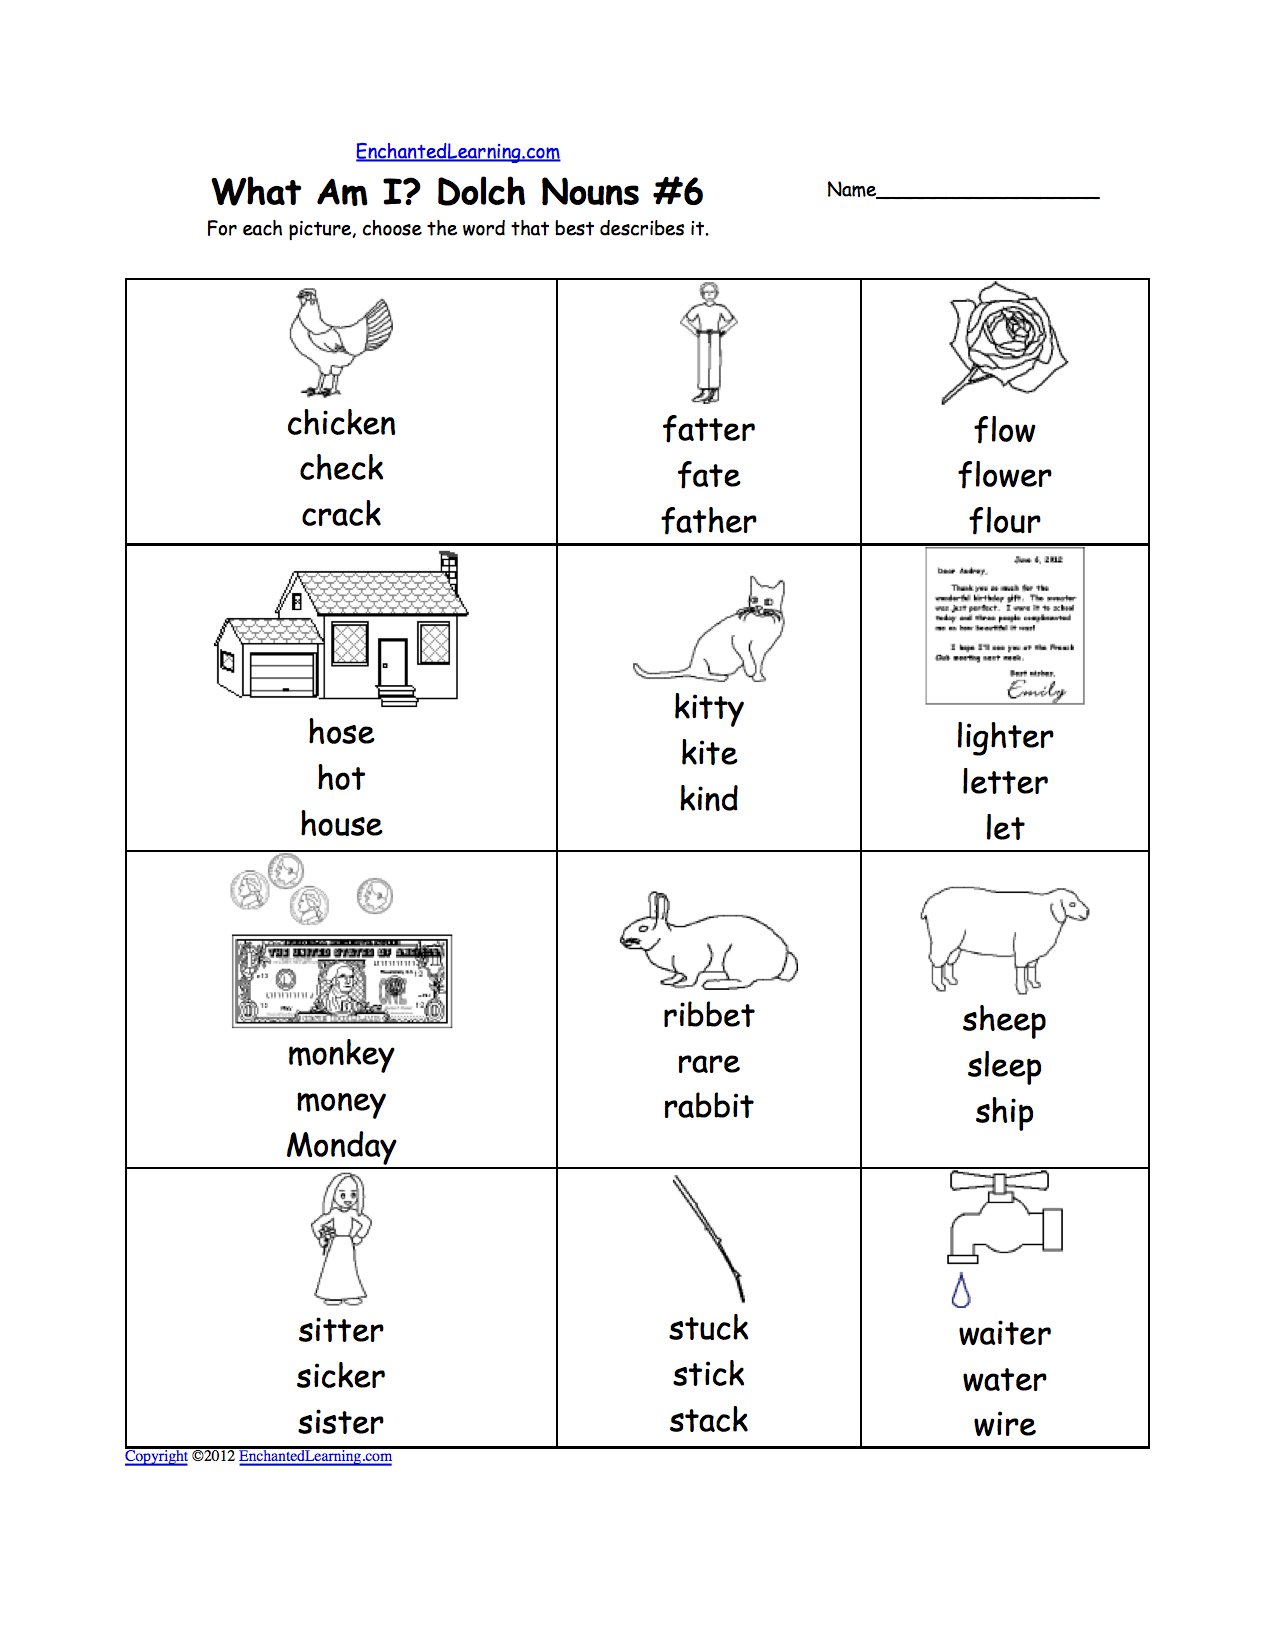 What am I? Dolch Nouns Worksheet Printouts ...